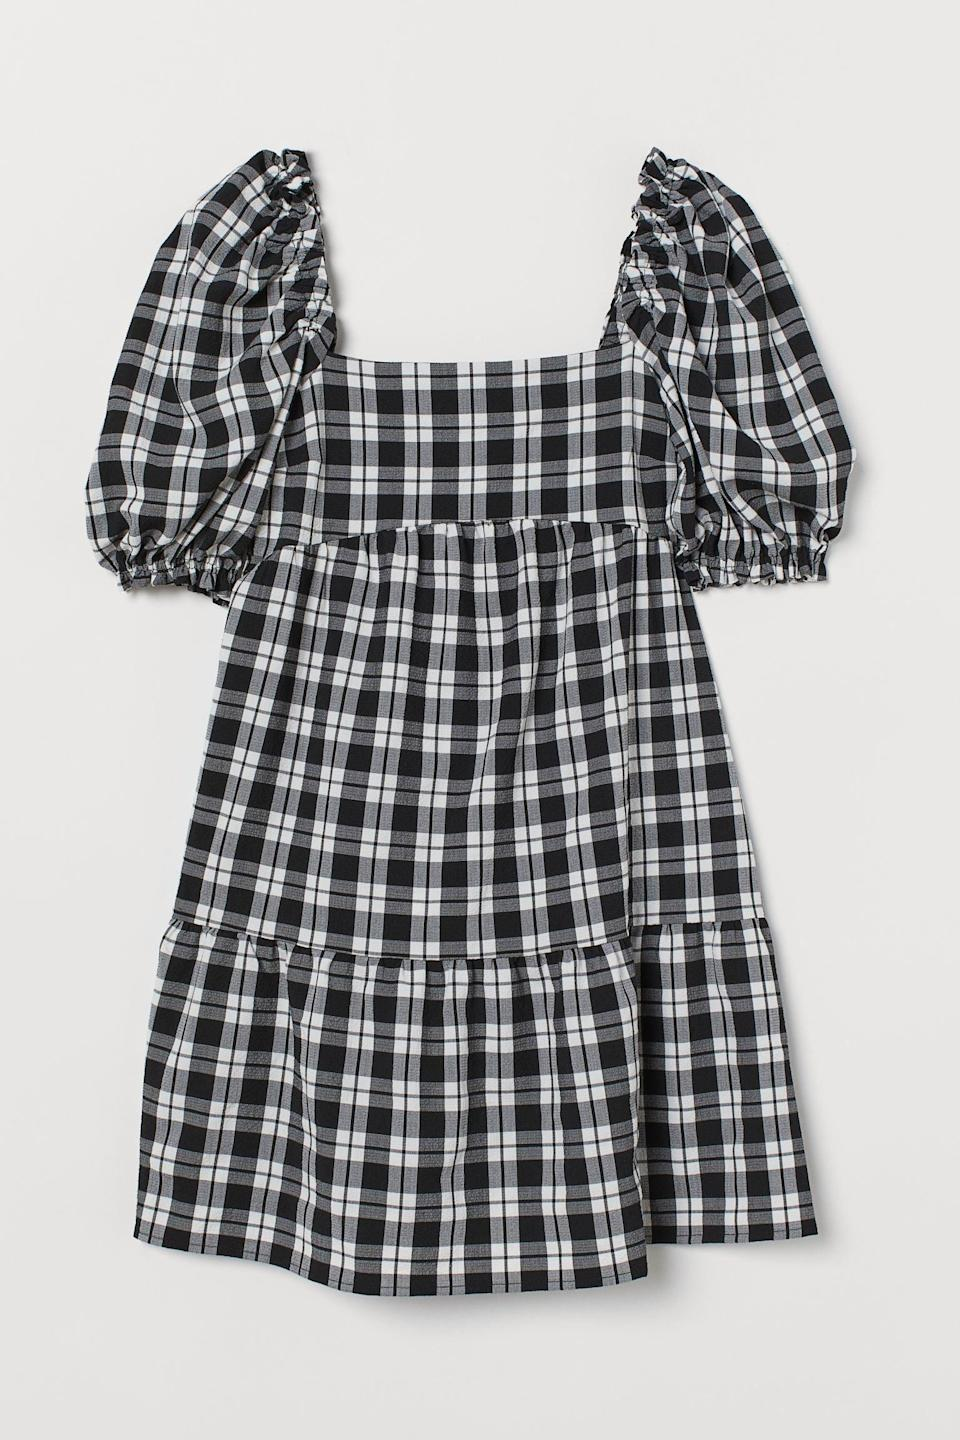 <p>Tap into the '90s plaid trend with this effortlessly cool <span>Seersucker Dress<br> </span> ($20, originally $30).</p>